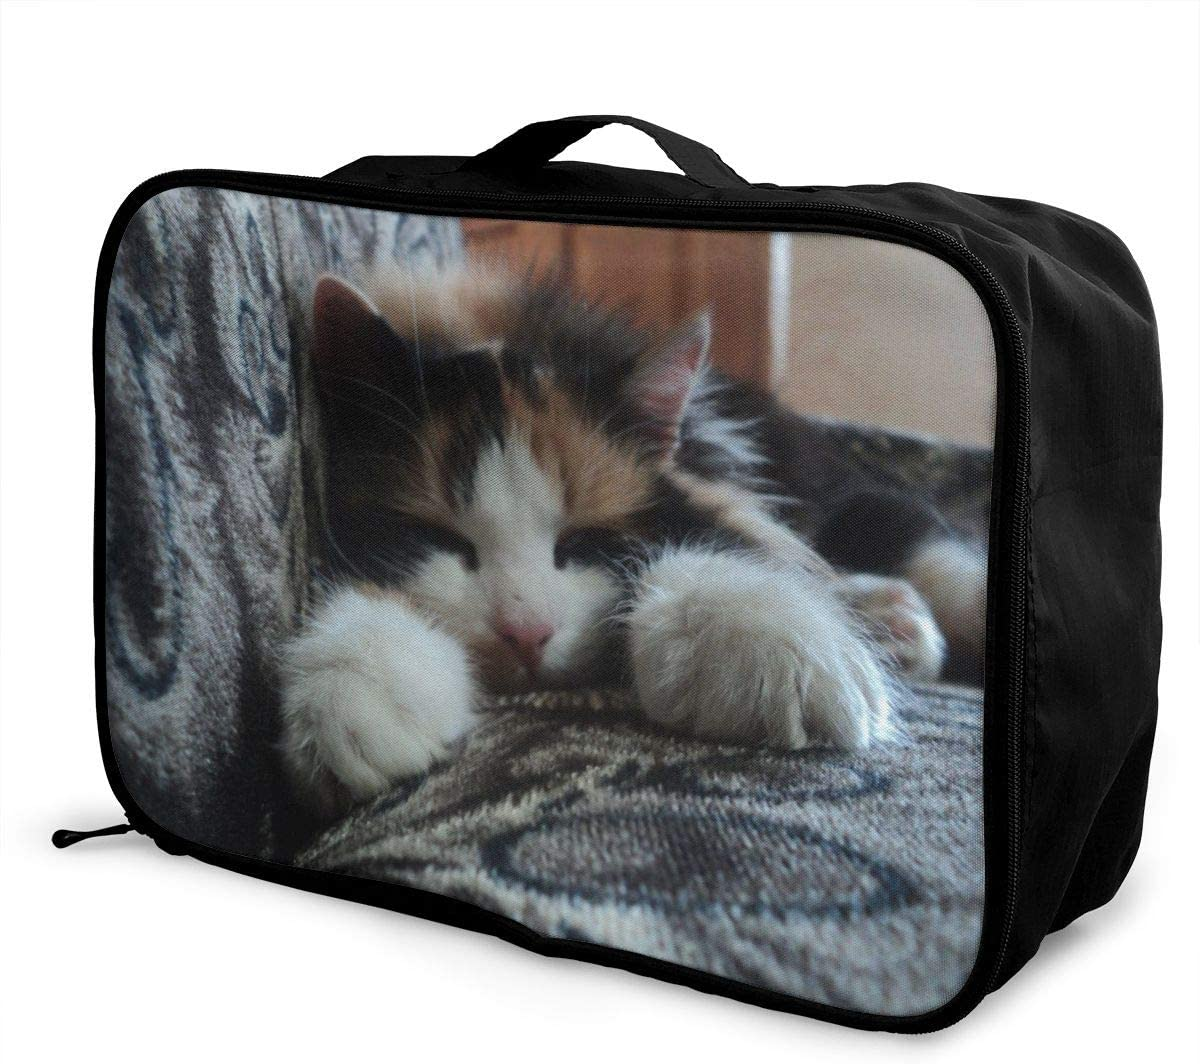 Yunshm A Cat That Sleeps On The Couch Customized Trolley Handbag Waterproof Unisex Large Capacity For Business Travel Storage